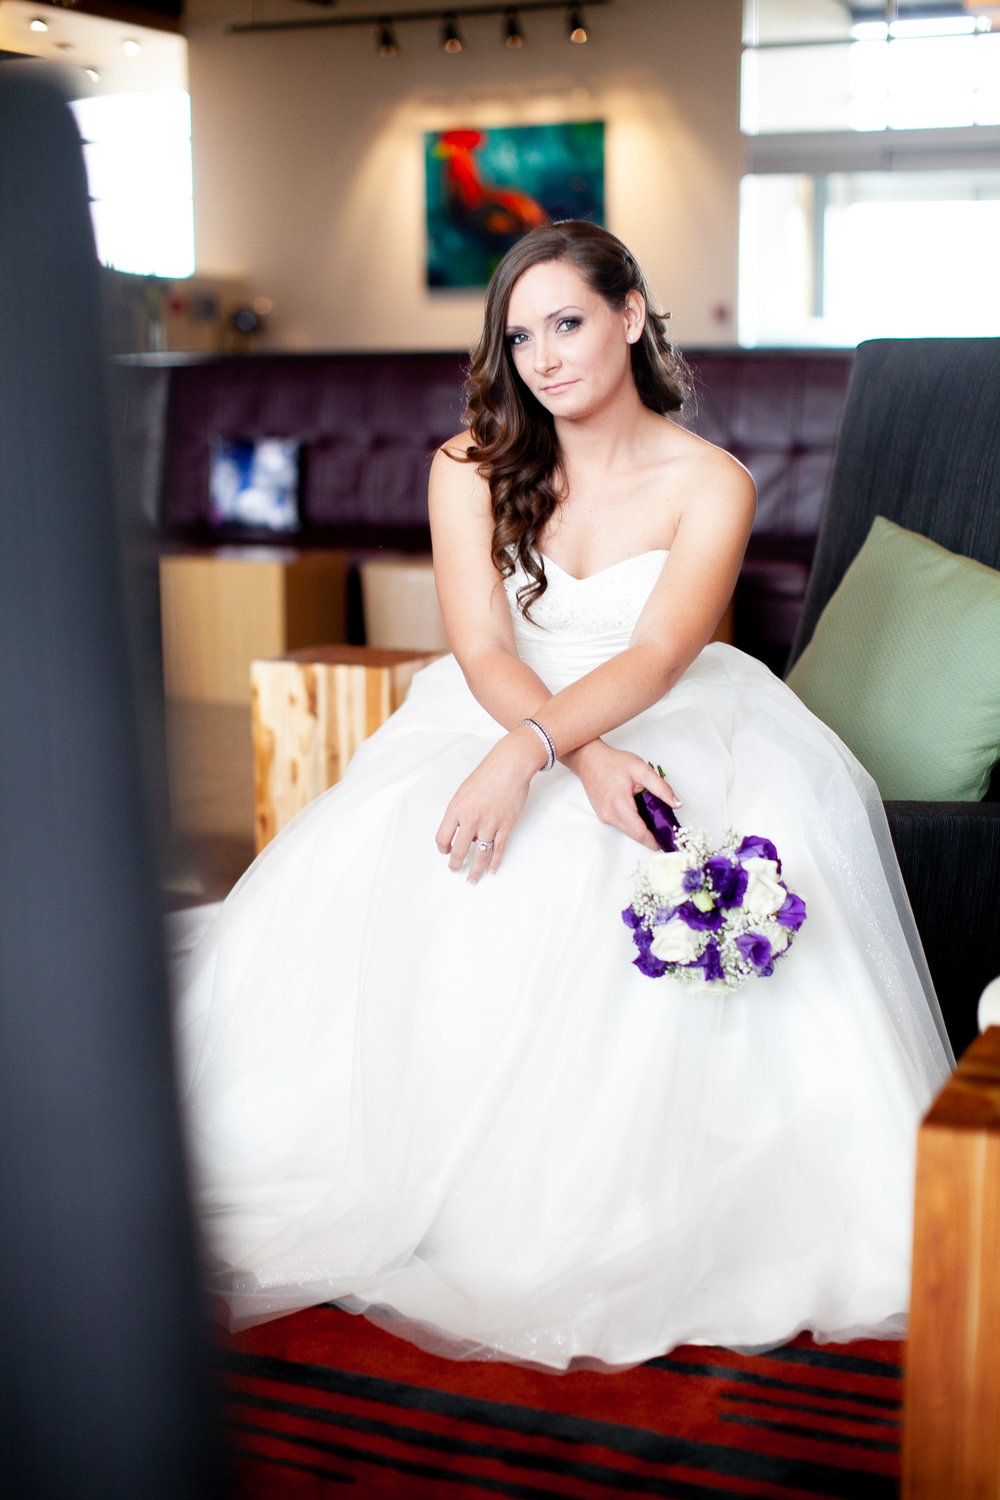 JMPHOTOART-Wedding-Photographer-185.jpg